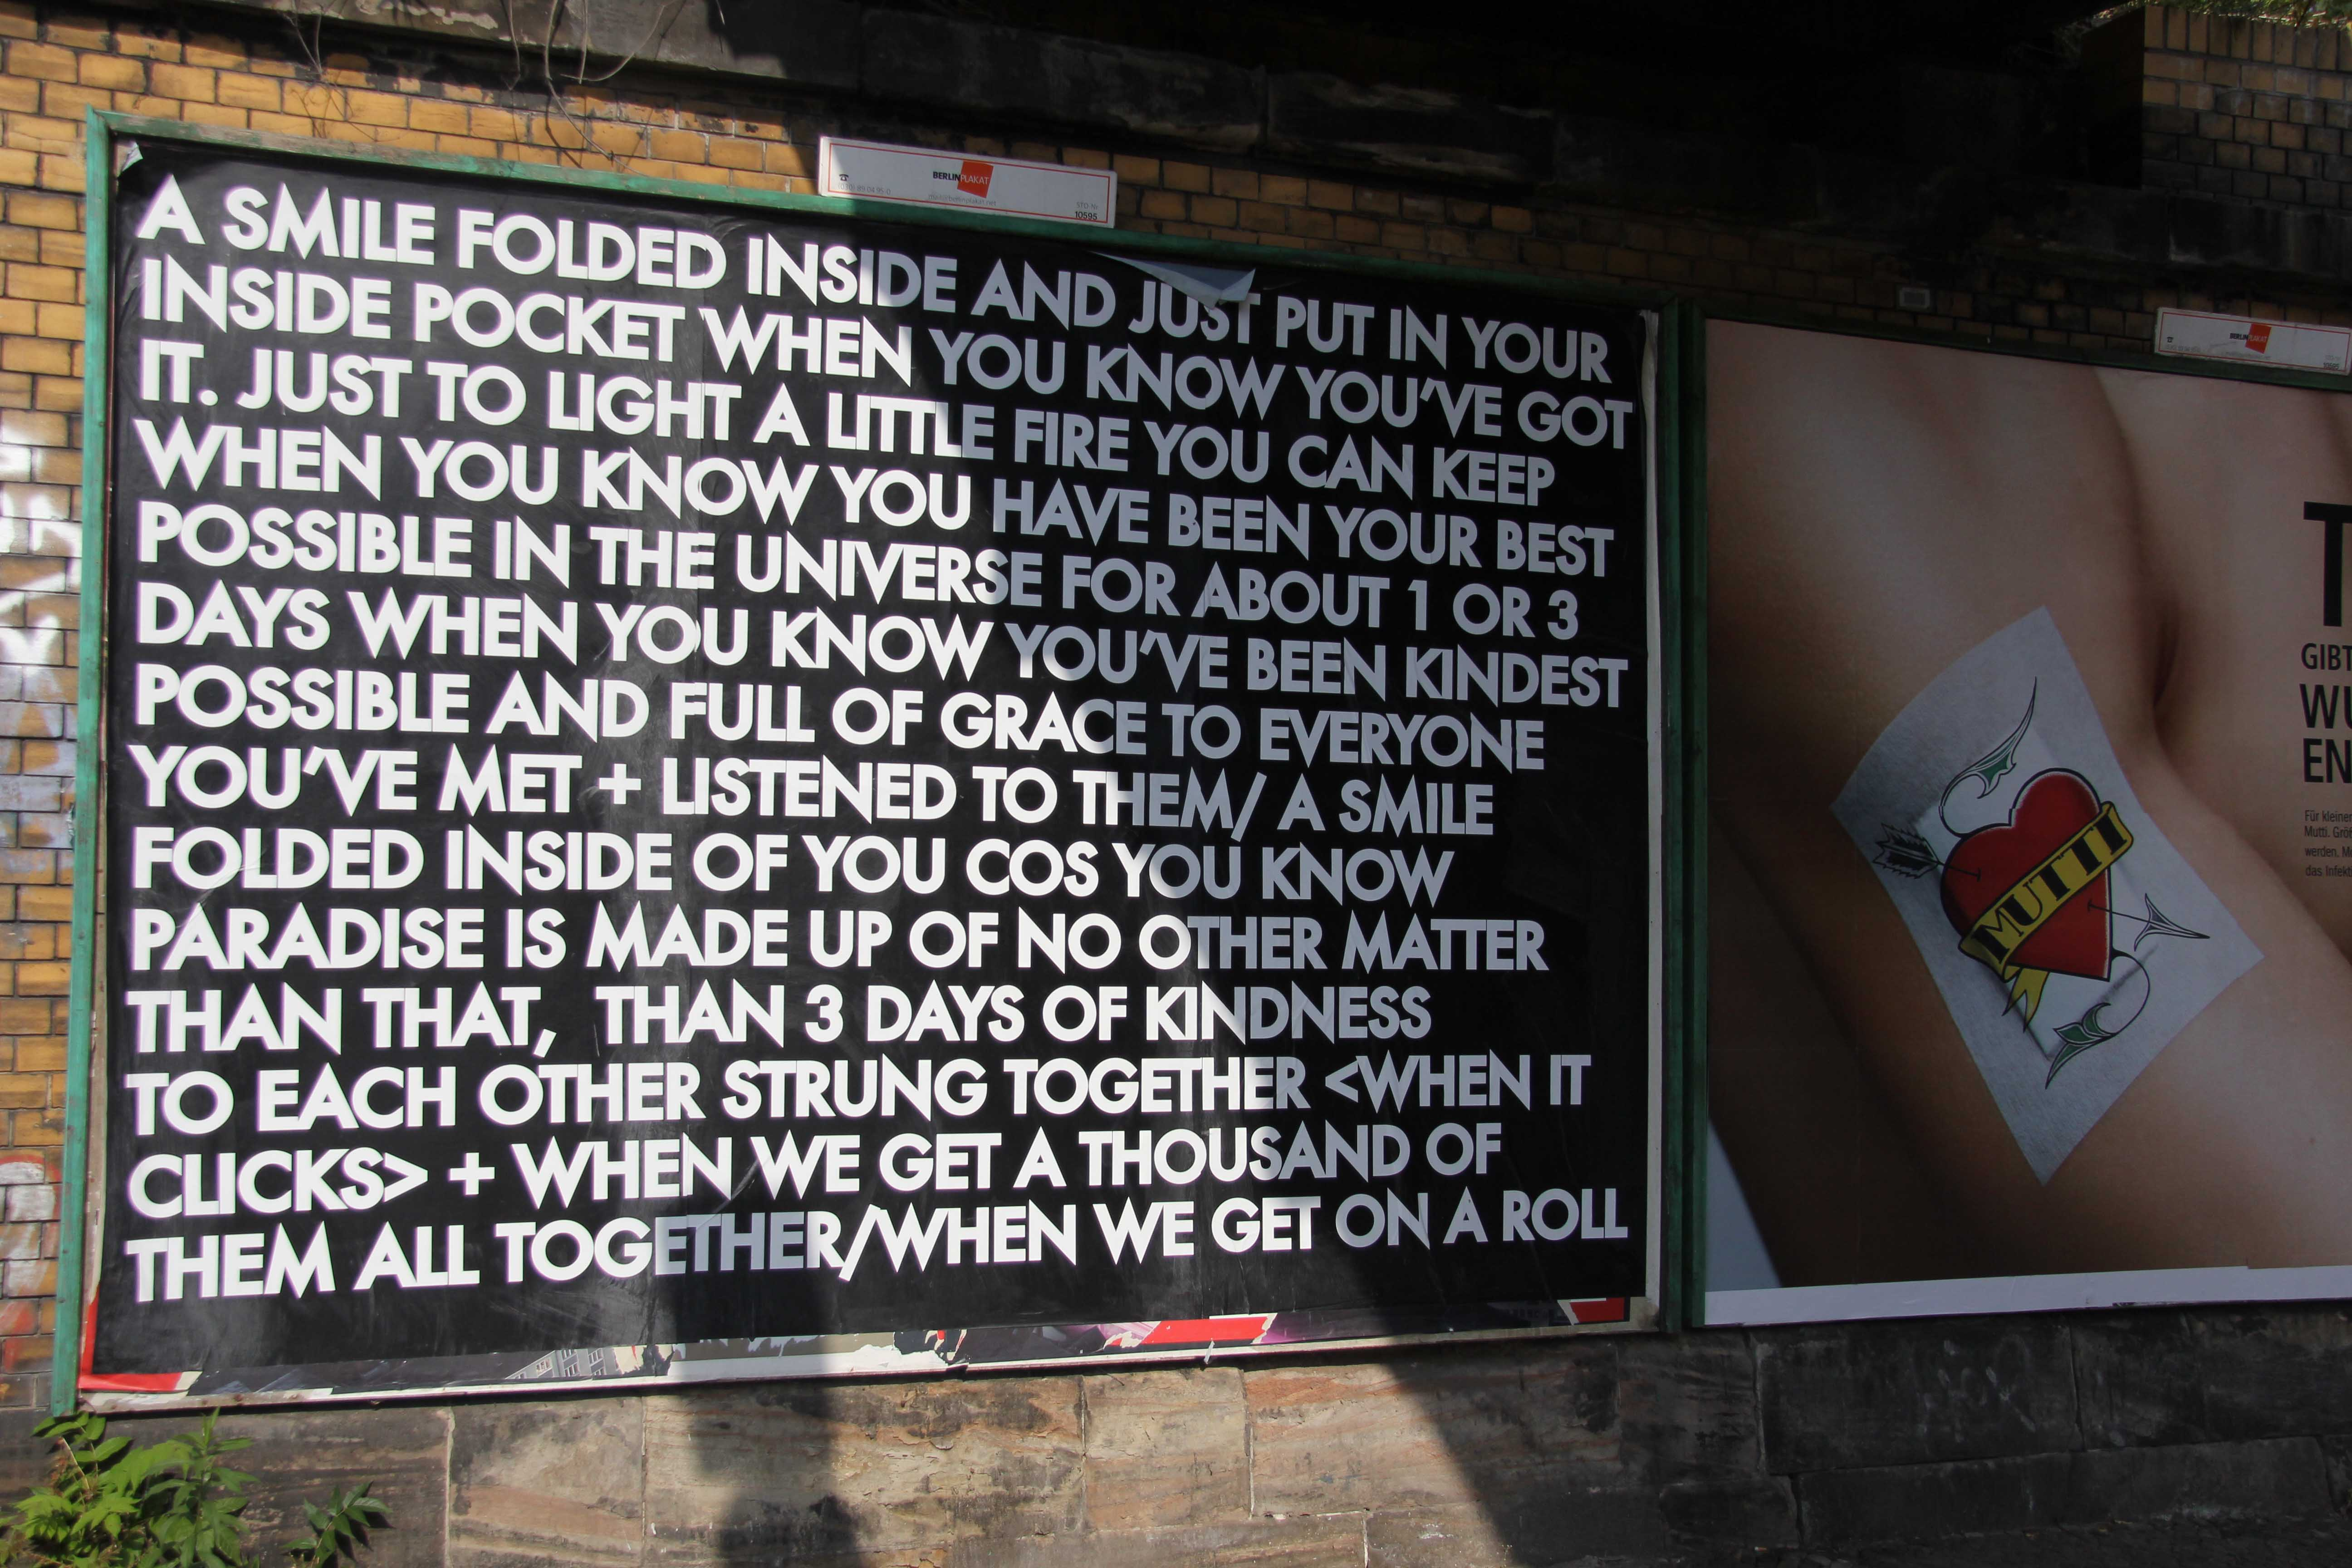 A Smile Folded Inside - Robert Montgomery Billboard on Yorckstrasse as part of Echoes of Voices in the High Towers in Berlin